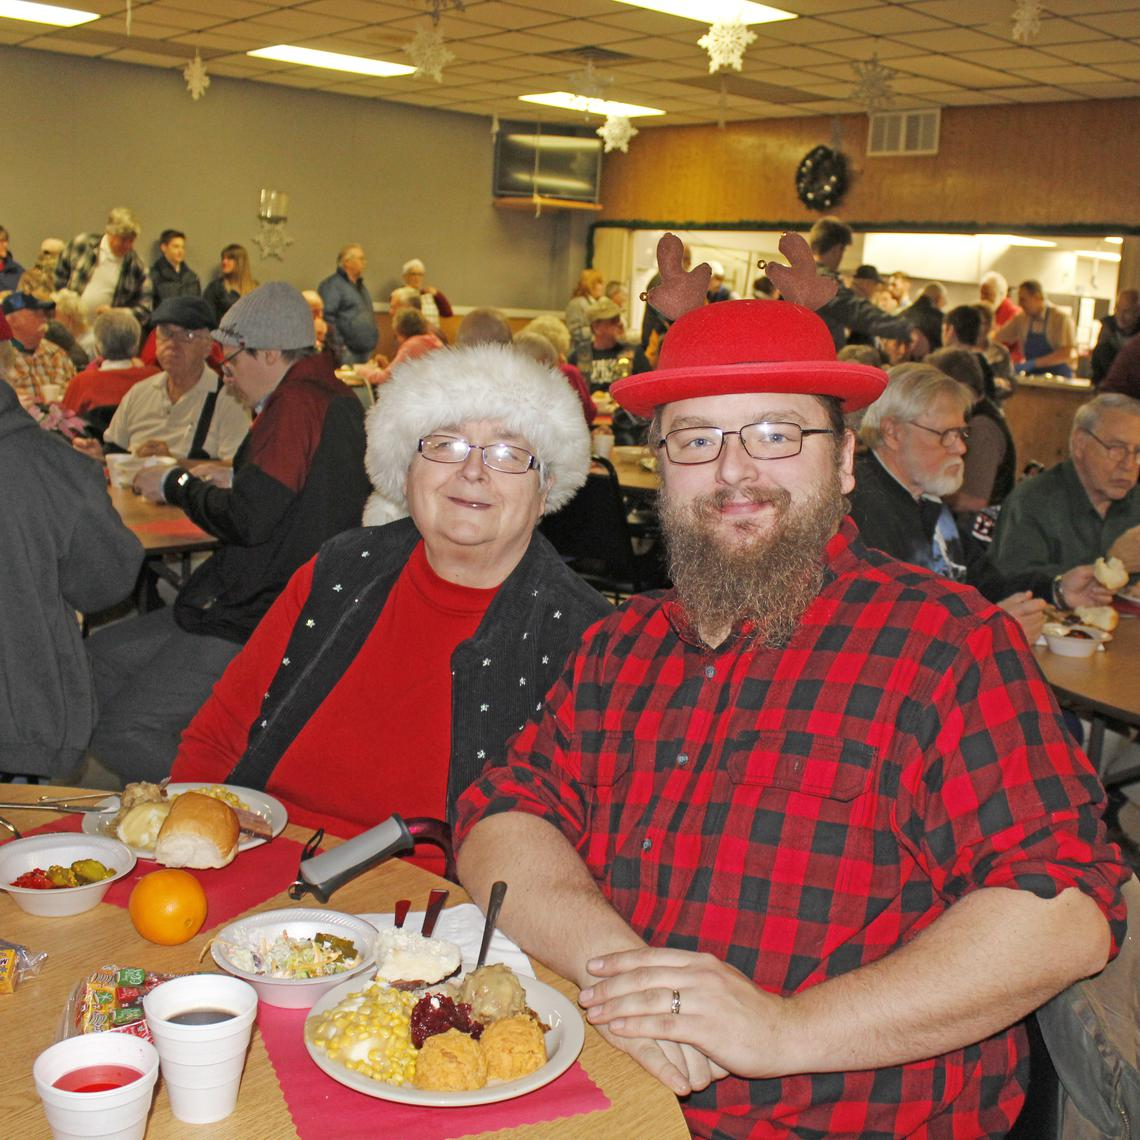 Linda Johnson and her son Derek Johnson attended the dinner in festive colors and Santa and reindeer hats.